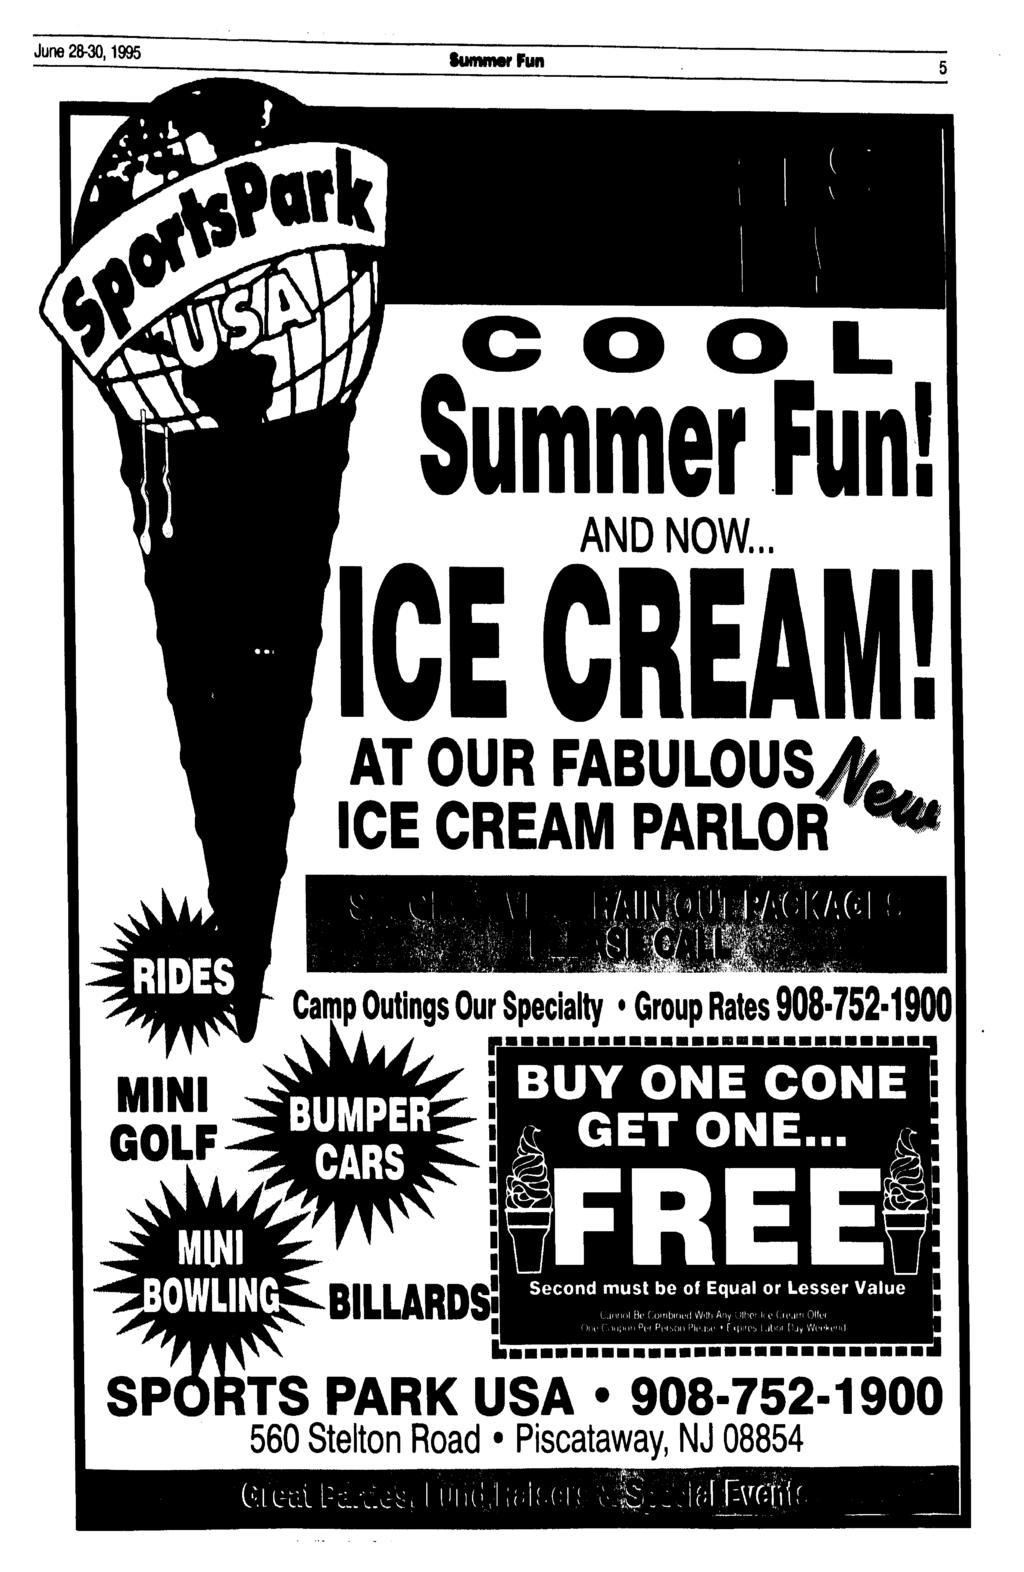 June 28-30,1995 Summer Fun! AND NOW... AT OUR FABULOUS CE CREAM PARLOR M^^^SJ^JM Camp Outings Our Specialty Group Rates 908-752-1900 MN GOLF BUMPE BUY ONE CONE AT GET ONE... * BLLARDS!